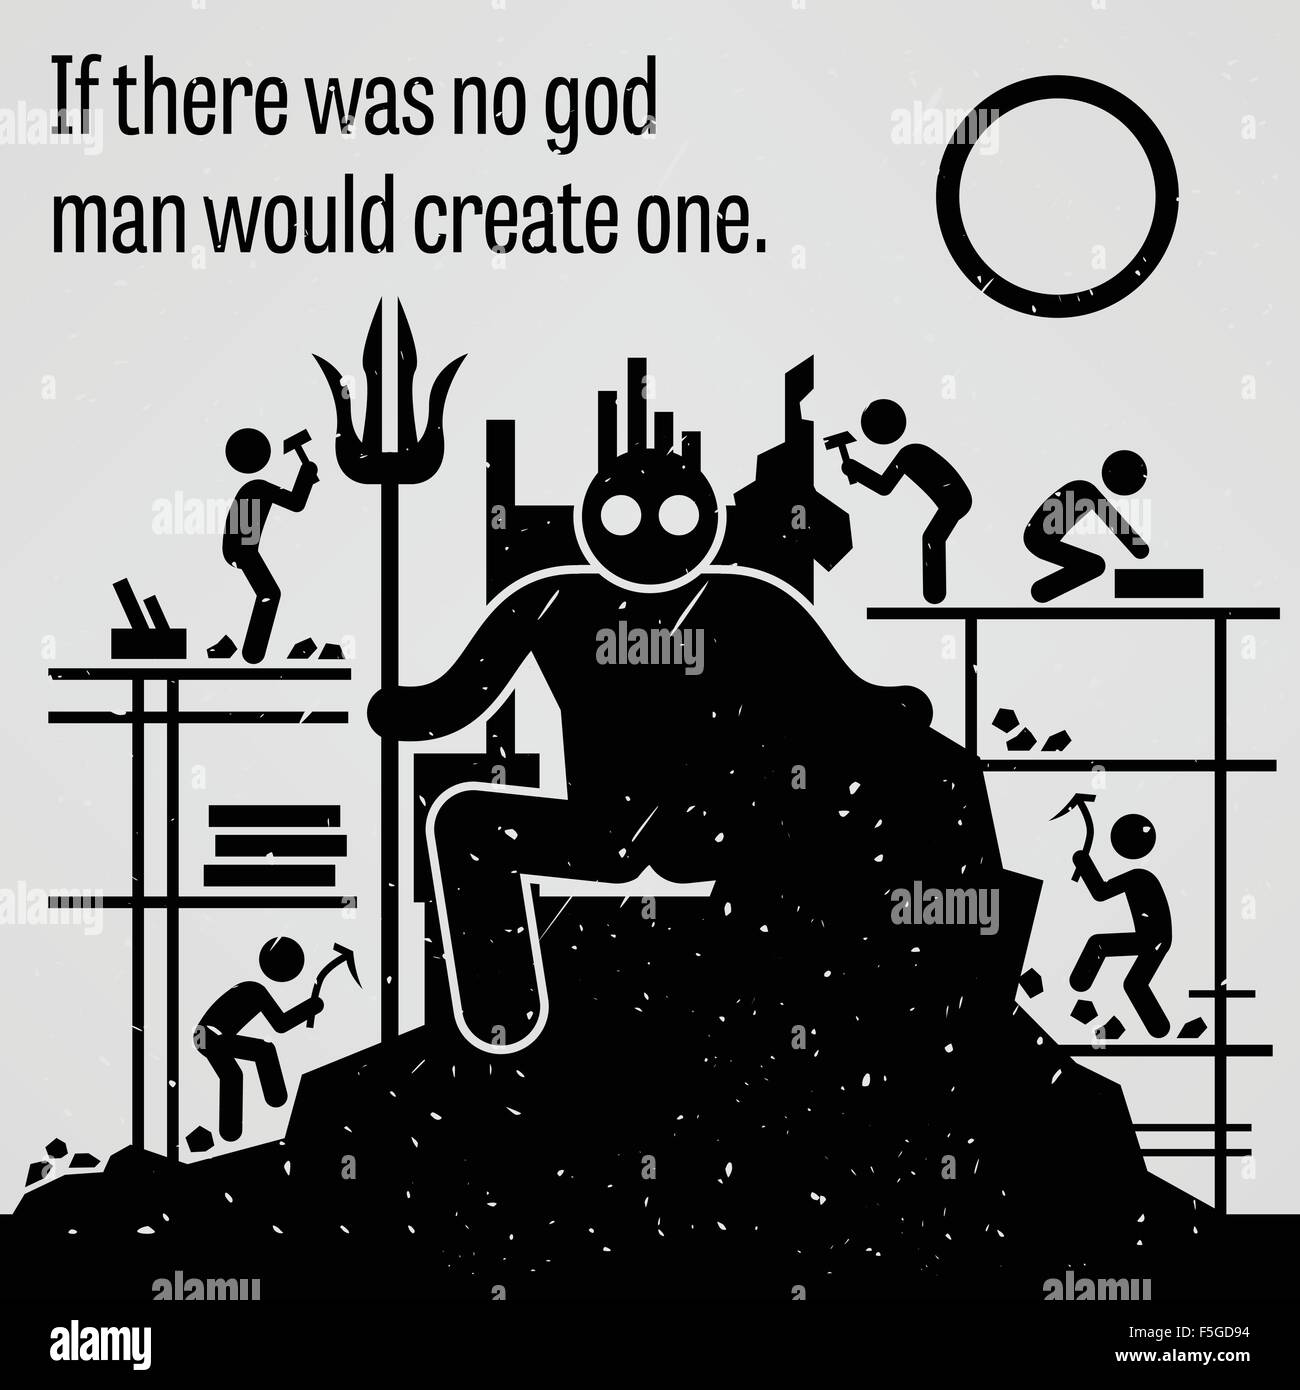 If There was No God Man Would Create One - Stock Vector